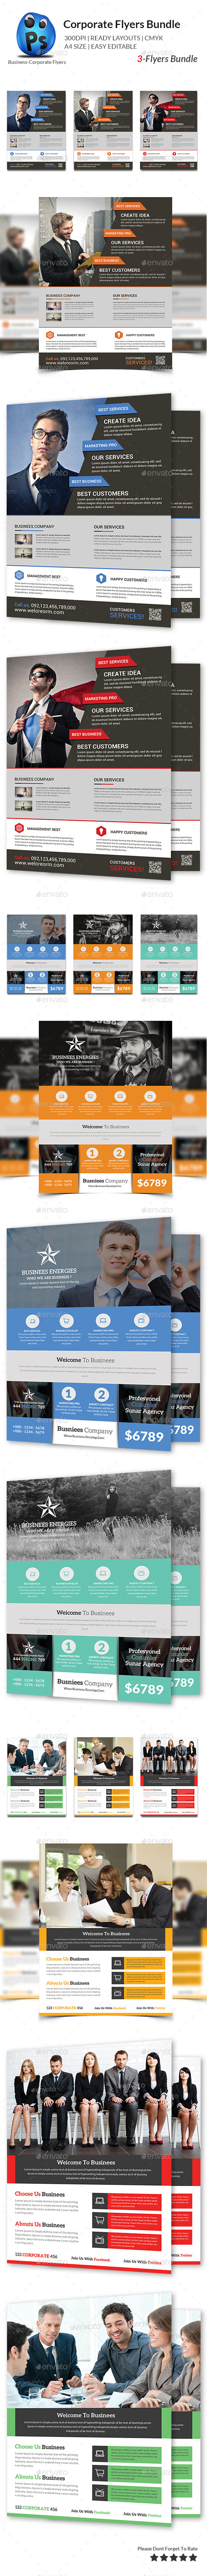 GraphicRiver Corporate Business 3 Flyer Bundle 10603912